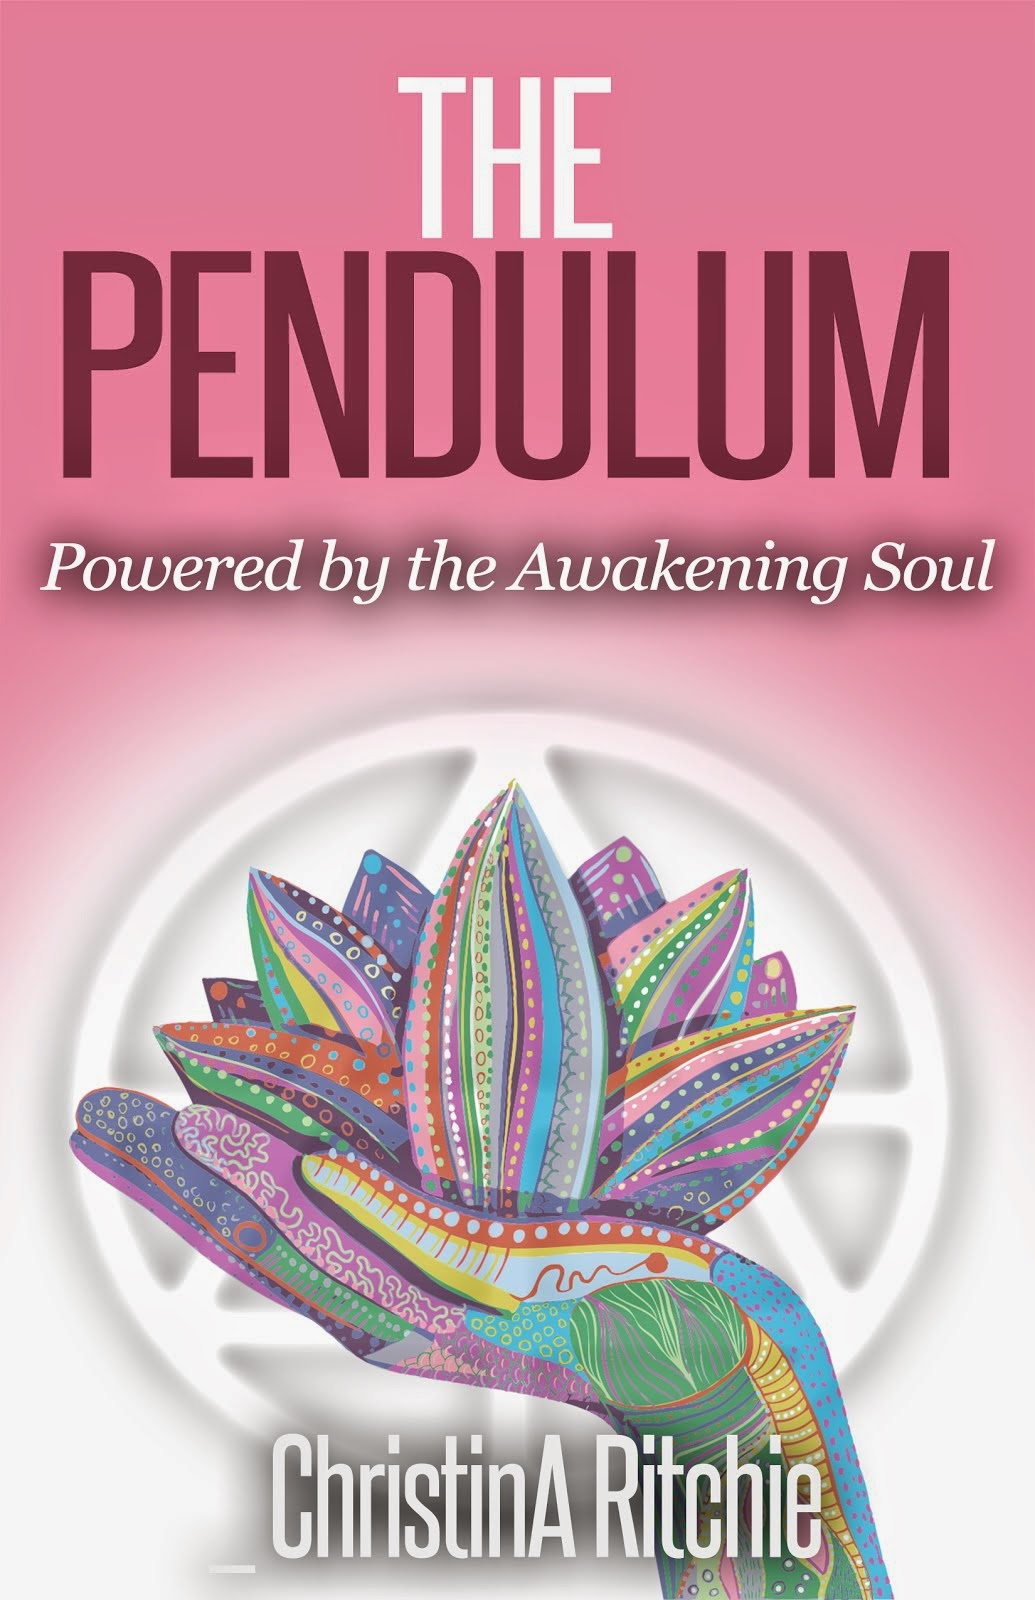 Order Your Copy of The Pedulum